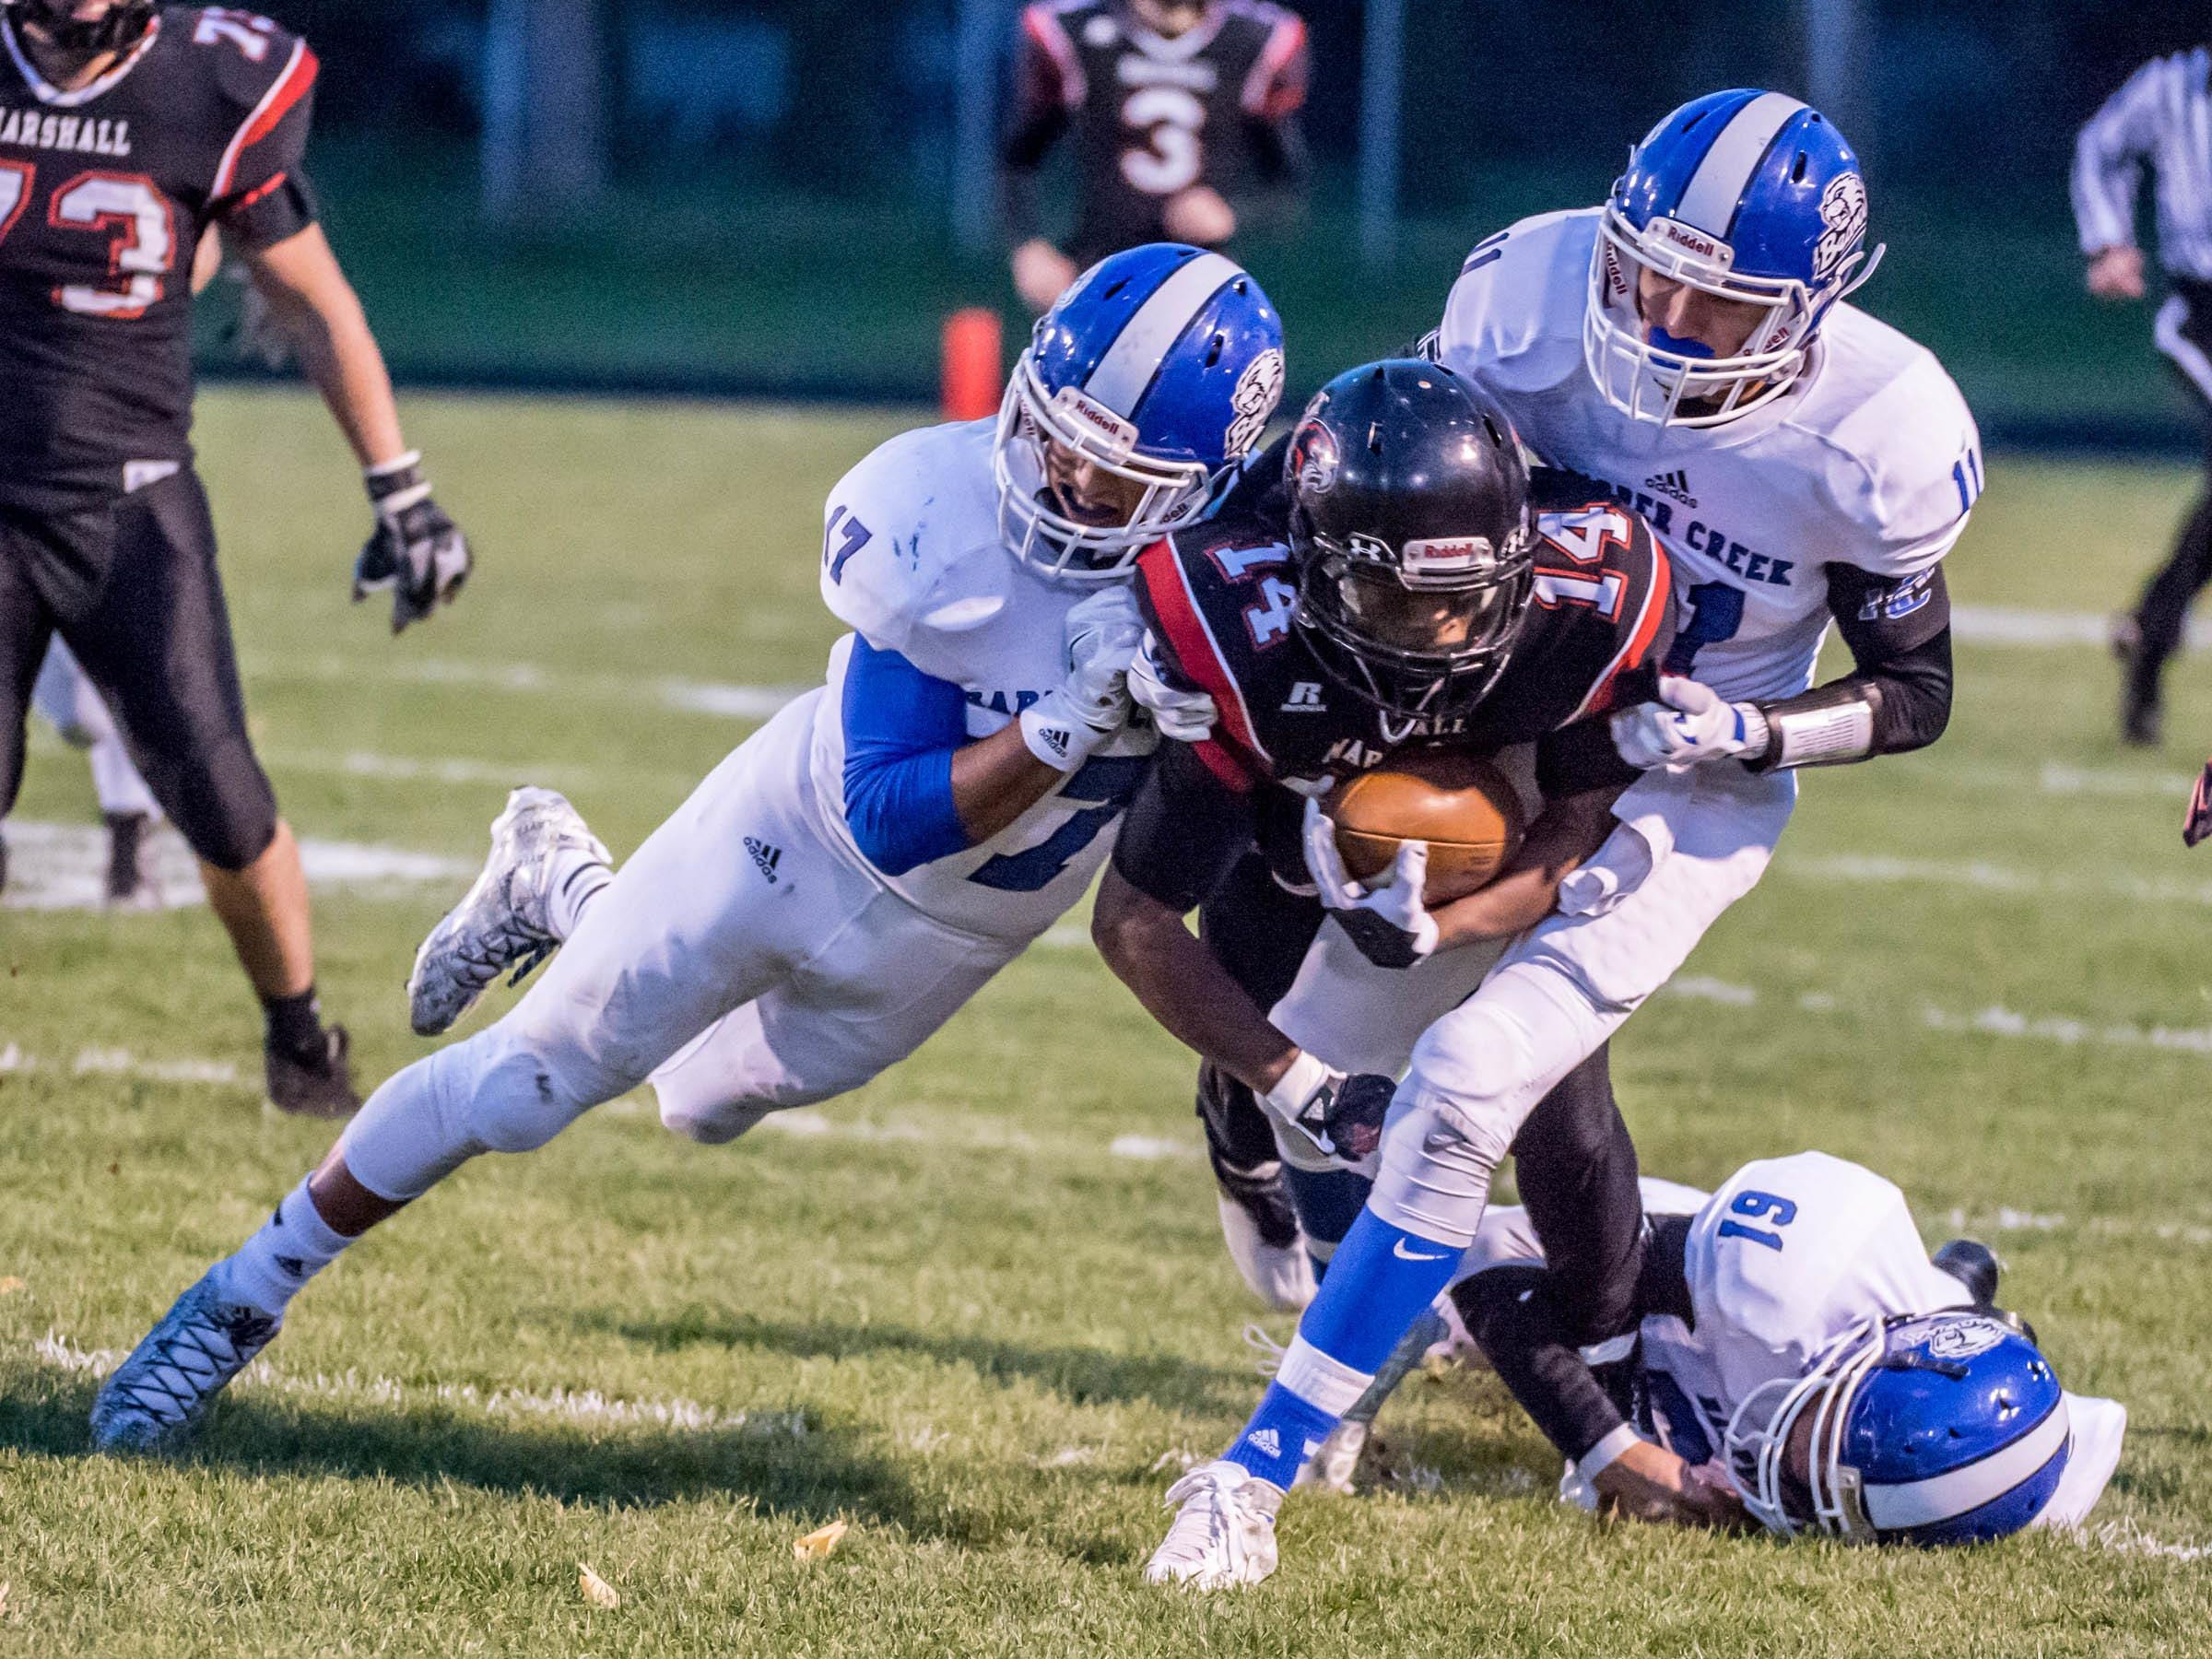 Marshall and Harper Creek will both be fighting for spots in the E-10 rankings throughout the season as they also compete in the Interstate 8 Conference.